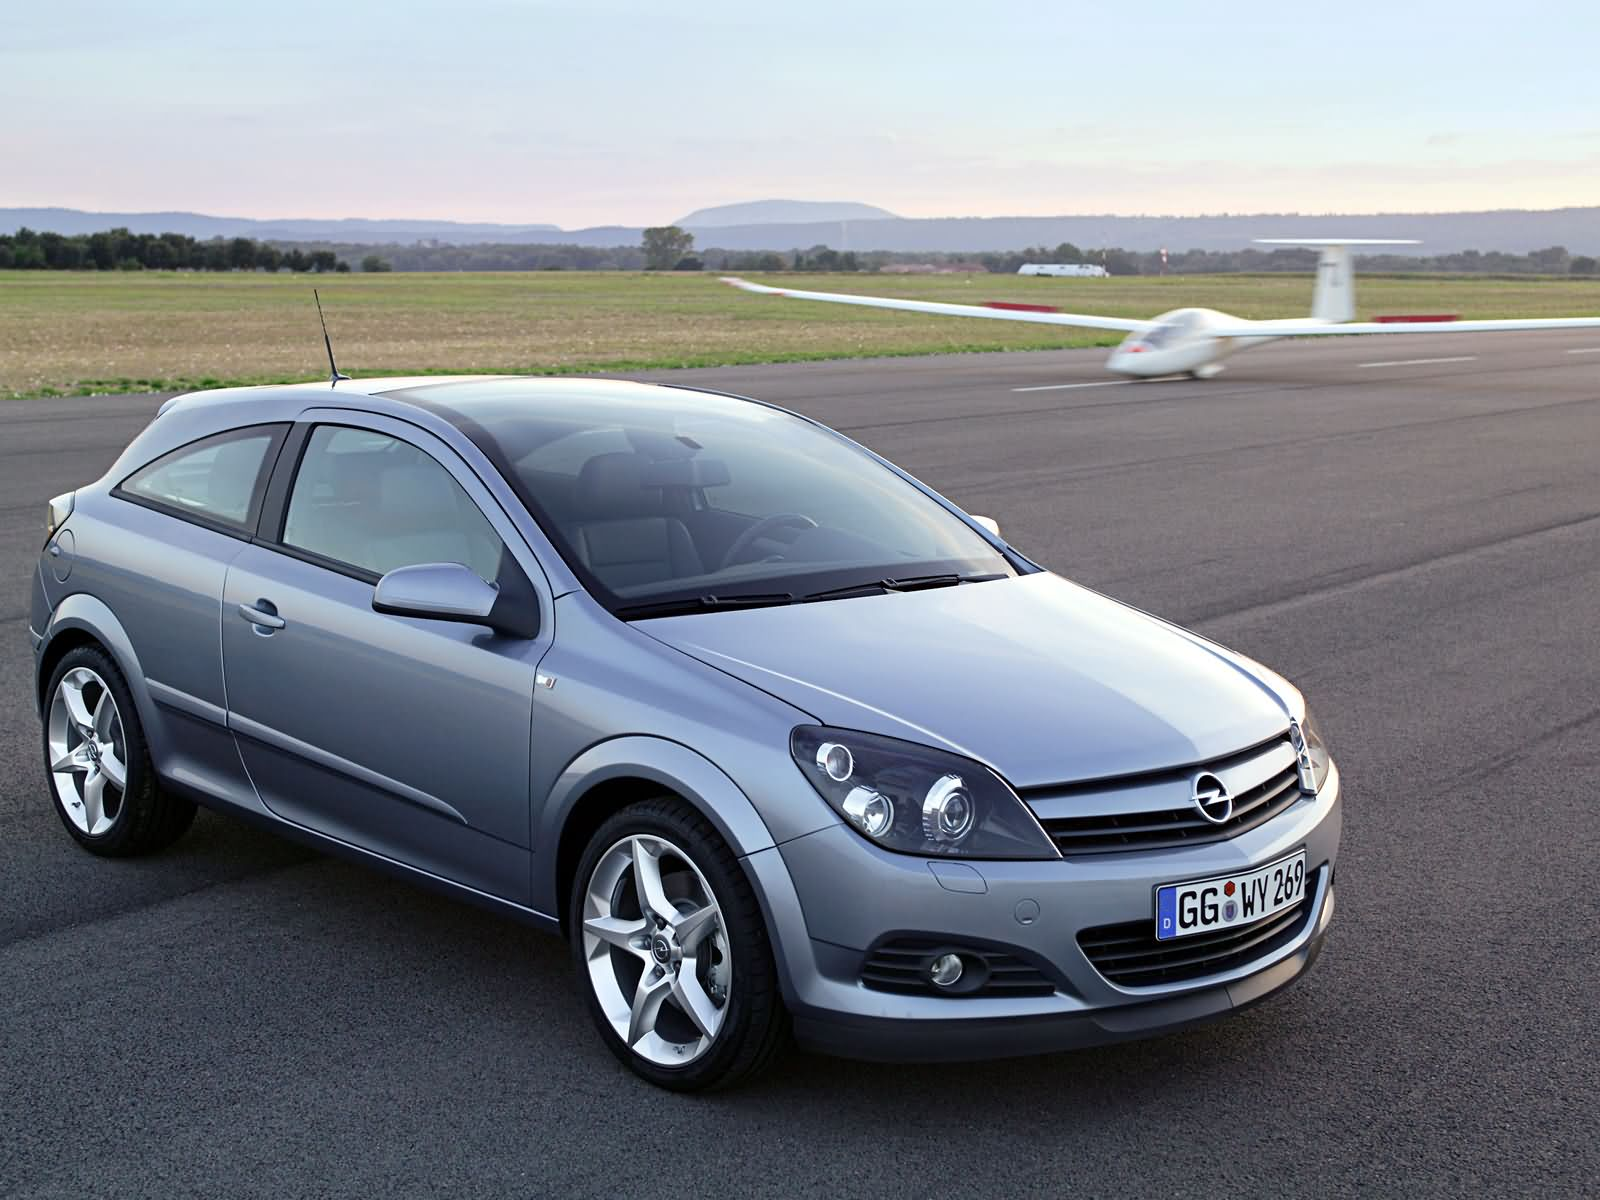 2012 opel astra h gtc pictures information and specs. Black Bedroom Furniture Sets. Home Design Ideas